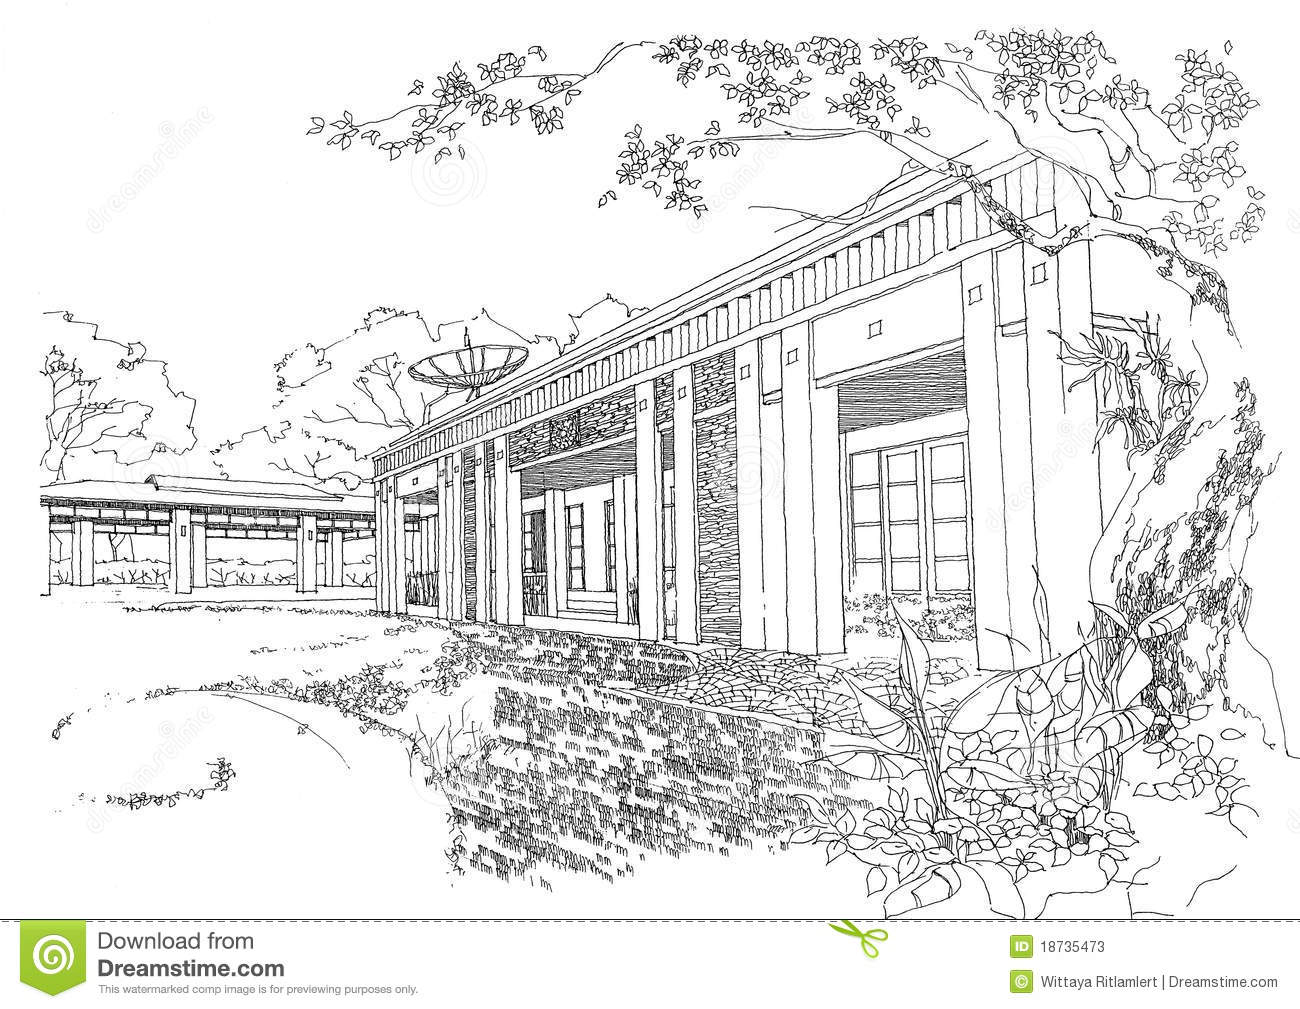 35x40 House Plans also 447193437971714848 additionally Royalty Free Stock Photography Interior Architecture Construction Landscape Sketch Image18735827 besides New Modern And Countrycottage House Plans besides Frank Lloyd Wrights Usonian Homes. on home carport plans